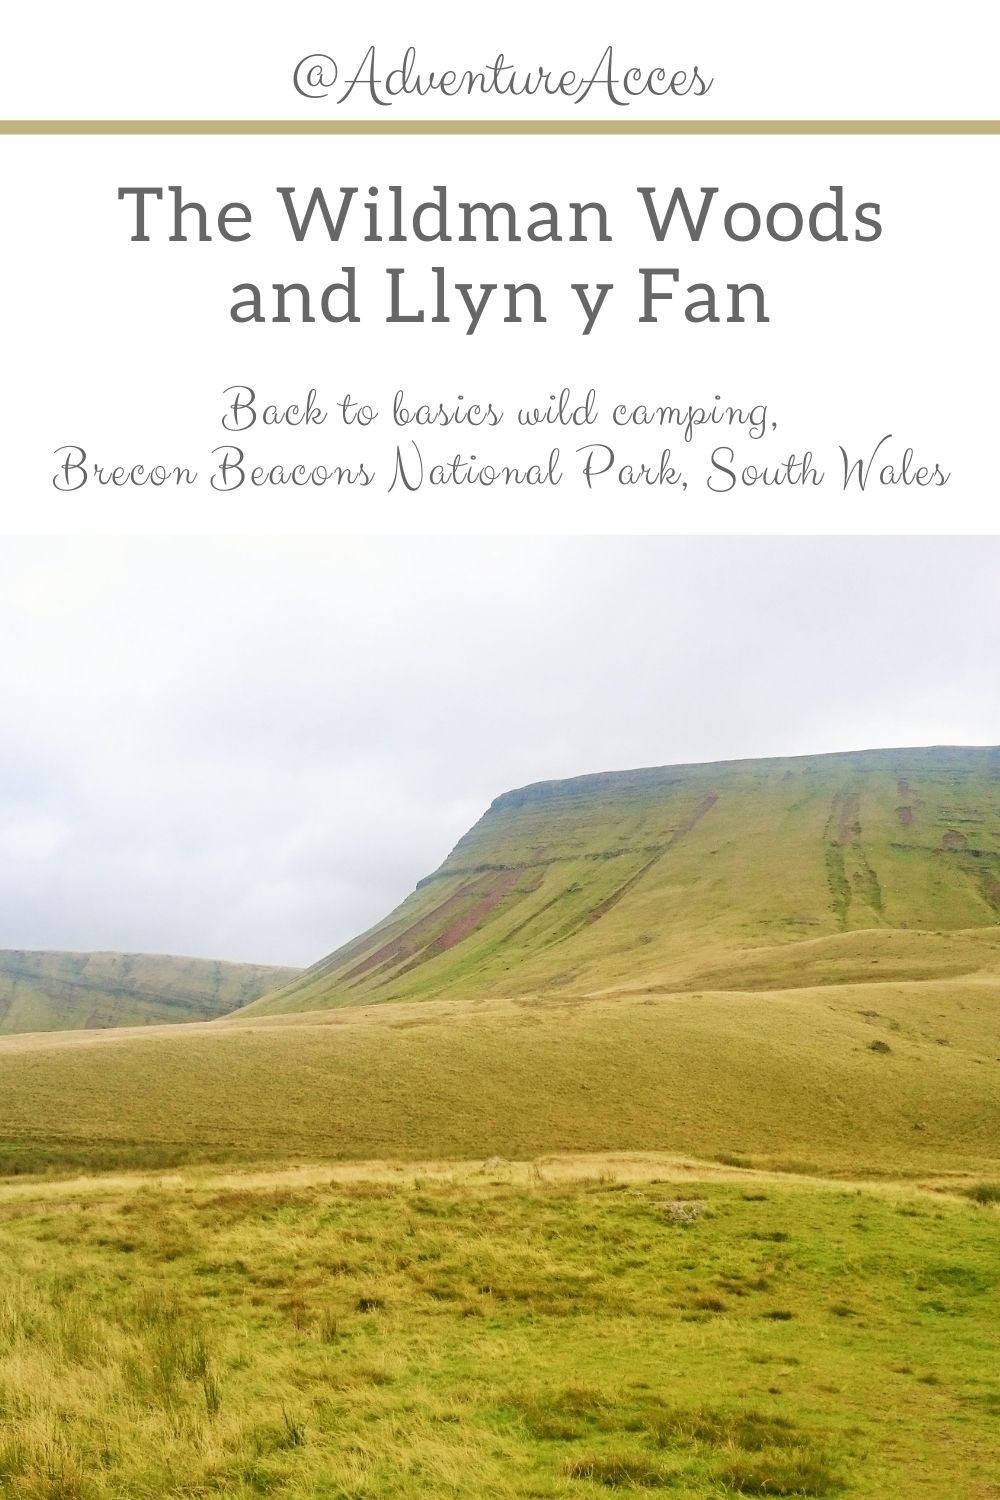 The Wildman Woods and Llyn y Fan. Wild camping, South Wales. Adventure Accessories